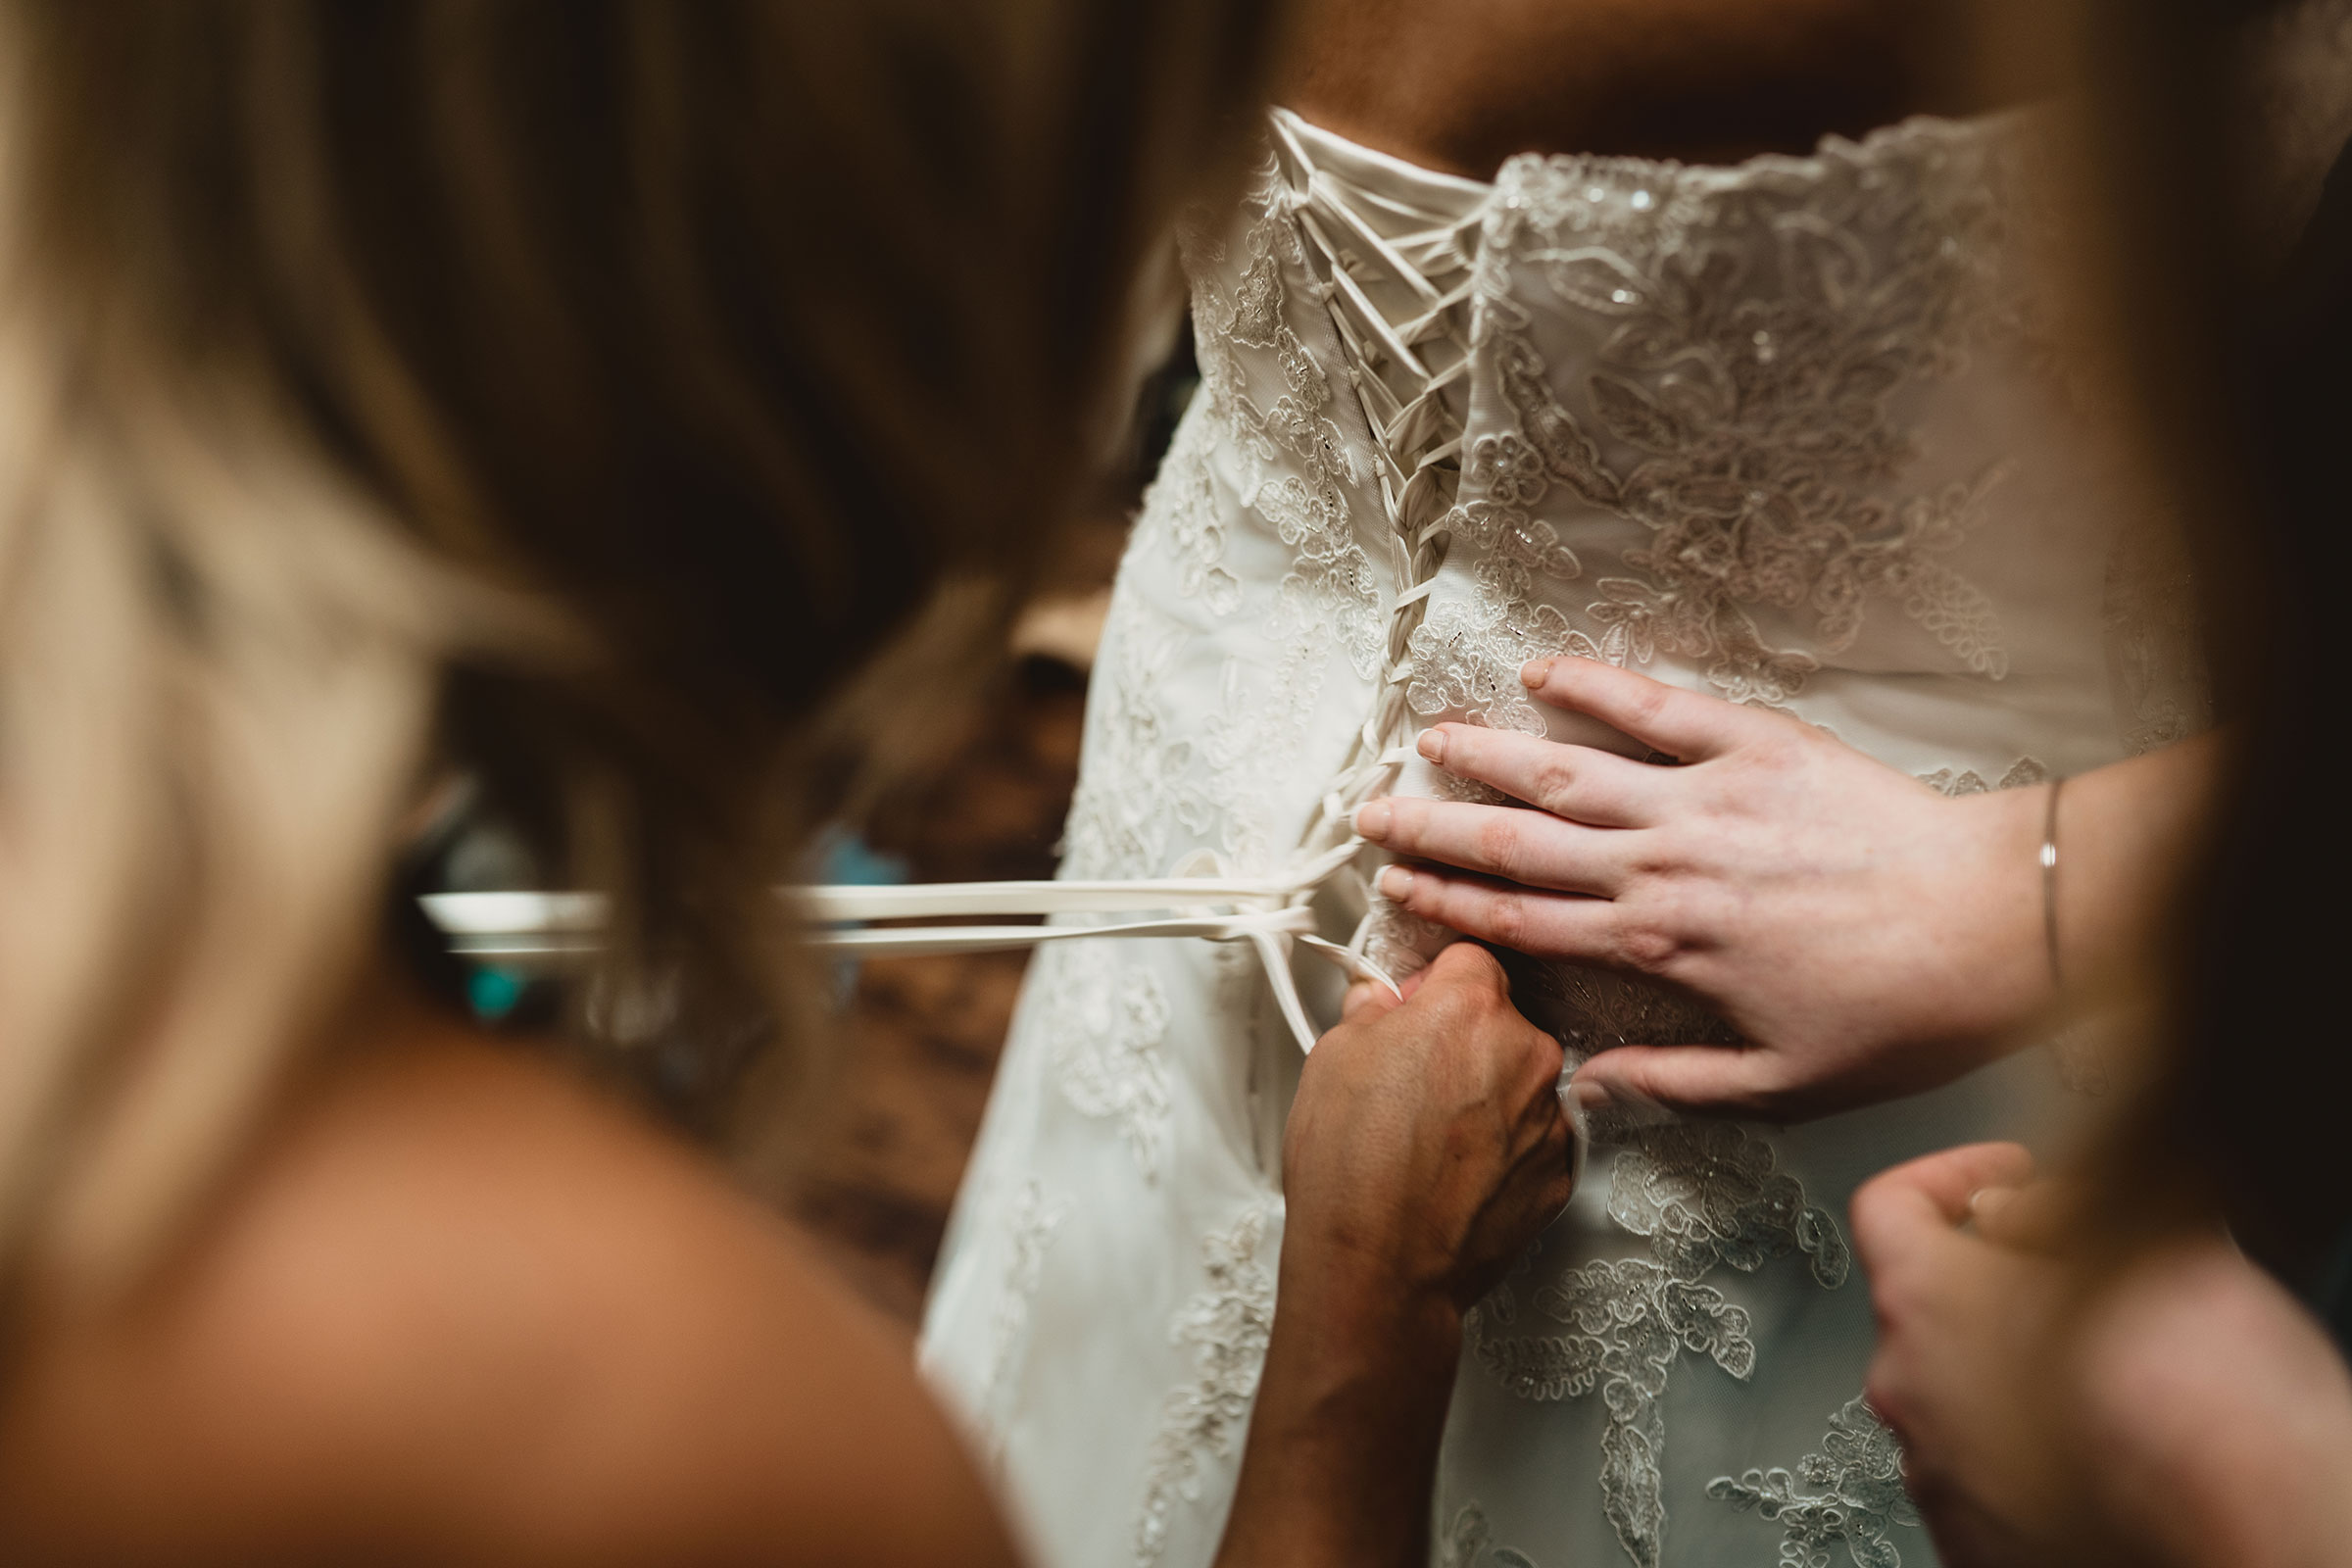 mother-helping-bride-get-ready-decades-event-center-building-desmoines-iowa-raelyn-ramey-photography..jpg